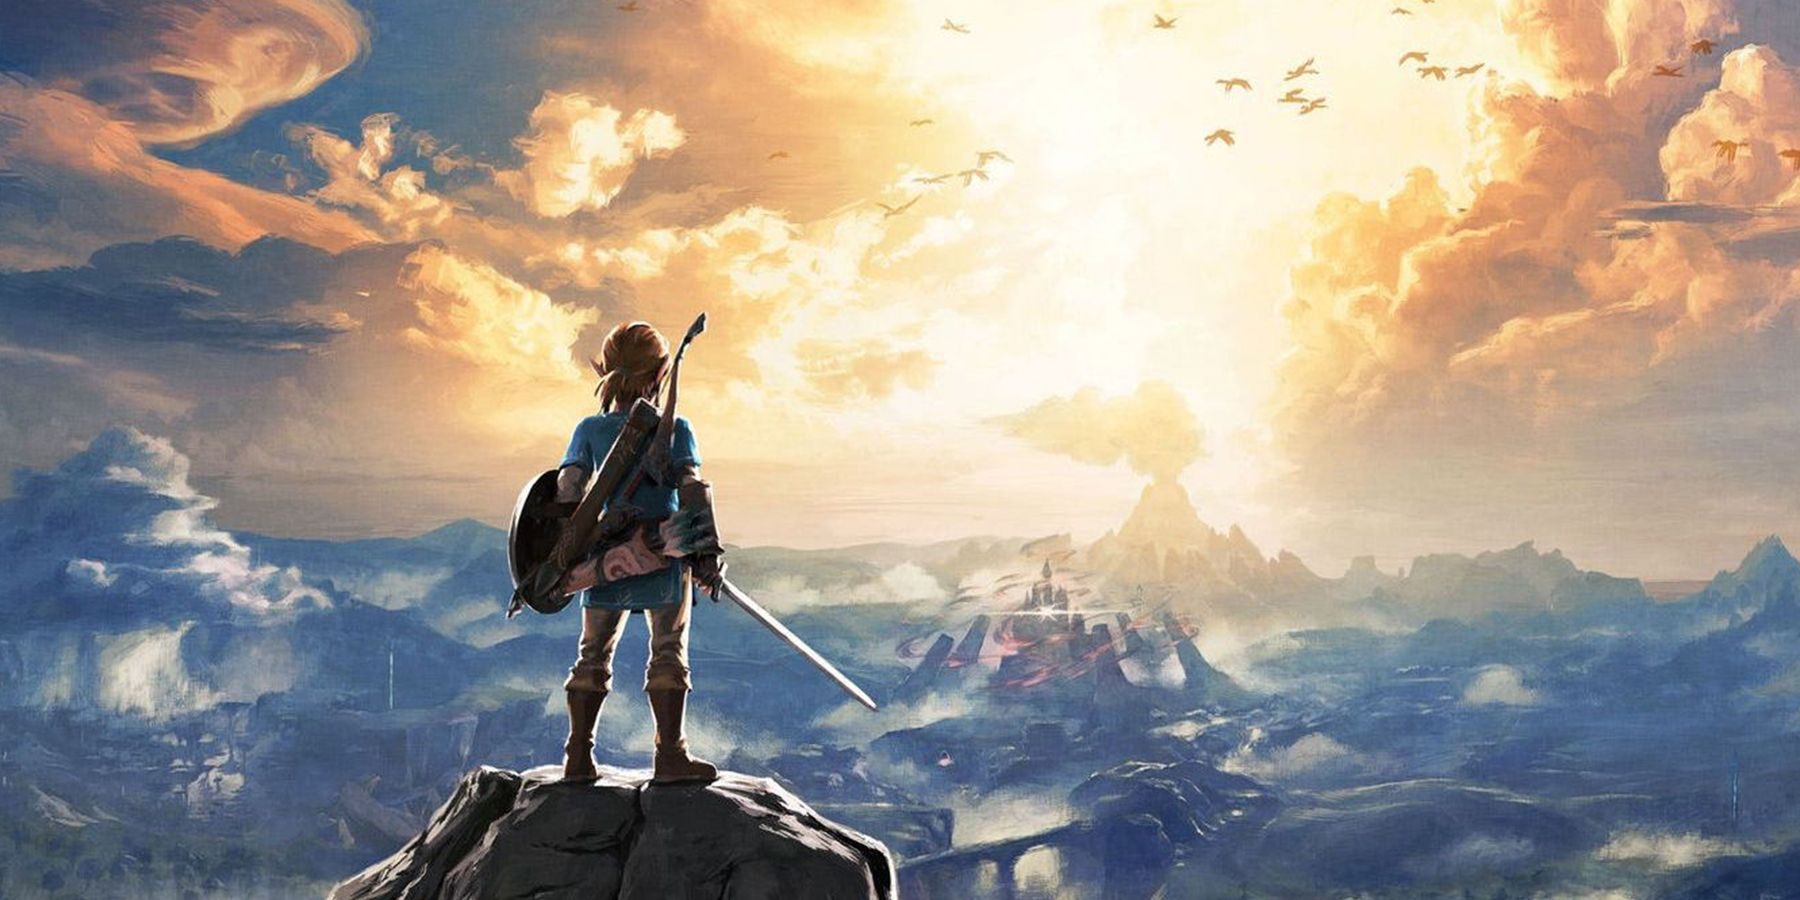 Zelda's 35th Anniversary Is Next Year: Here's What We Want